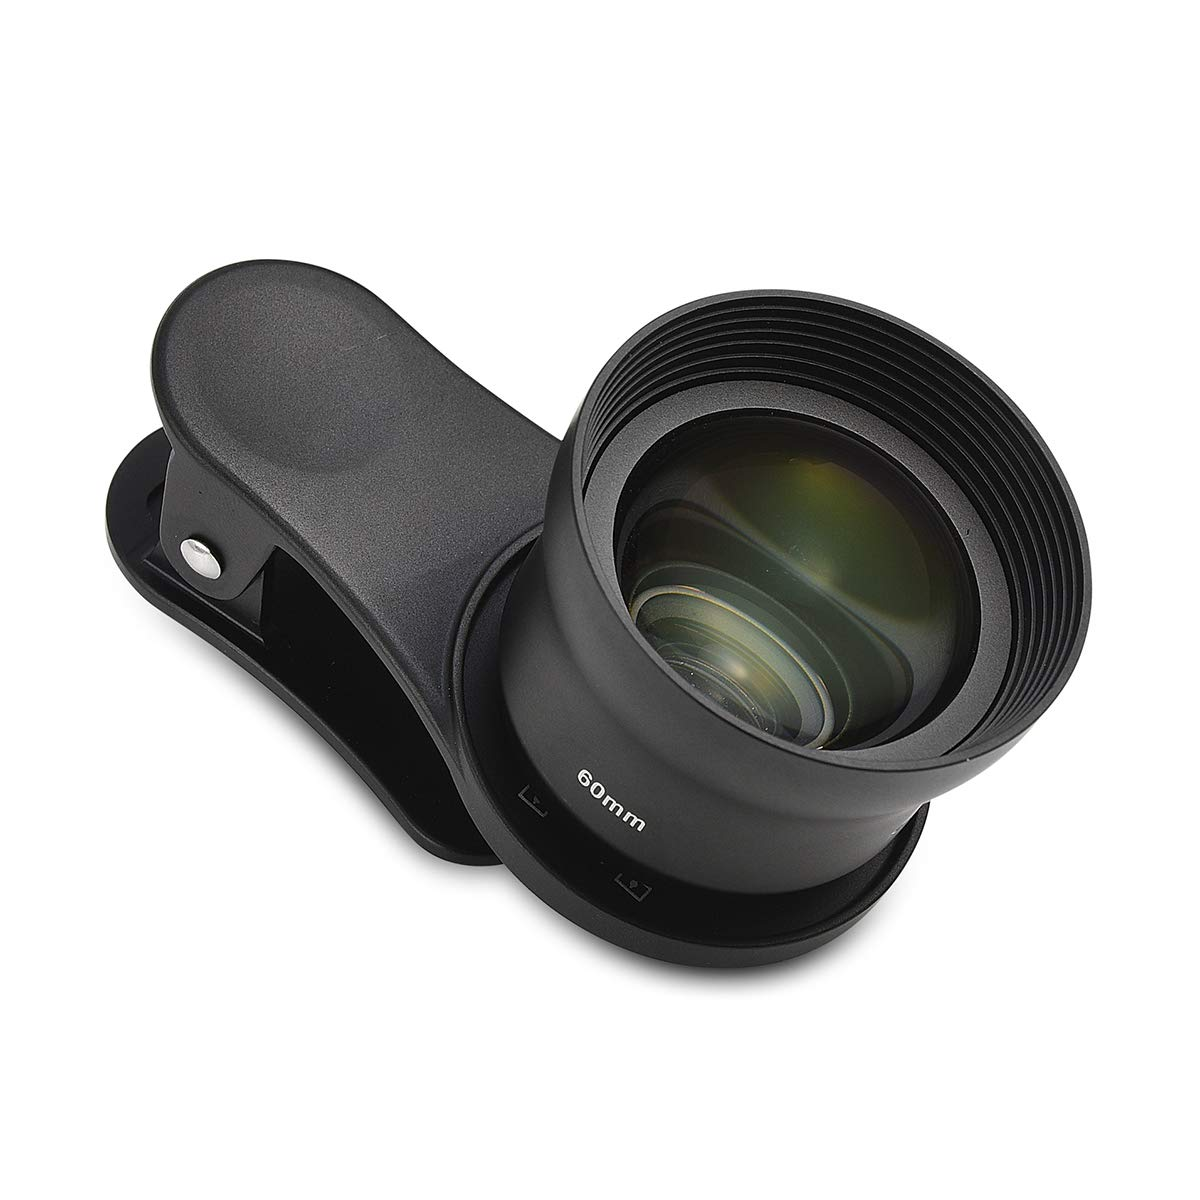 SIRUI Black 60mm Portrait Phone Lens with Multi-Purpose Clip, Constructed with German Schott Glass and Aluminum Housing, for iPhone, Pixel, Samsung Galaxy and Most Other Camera Phones